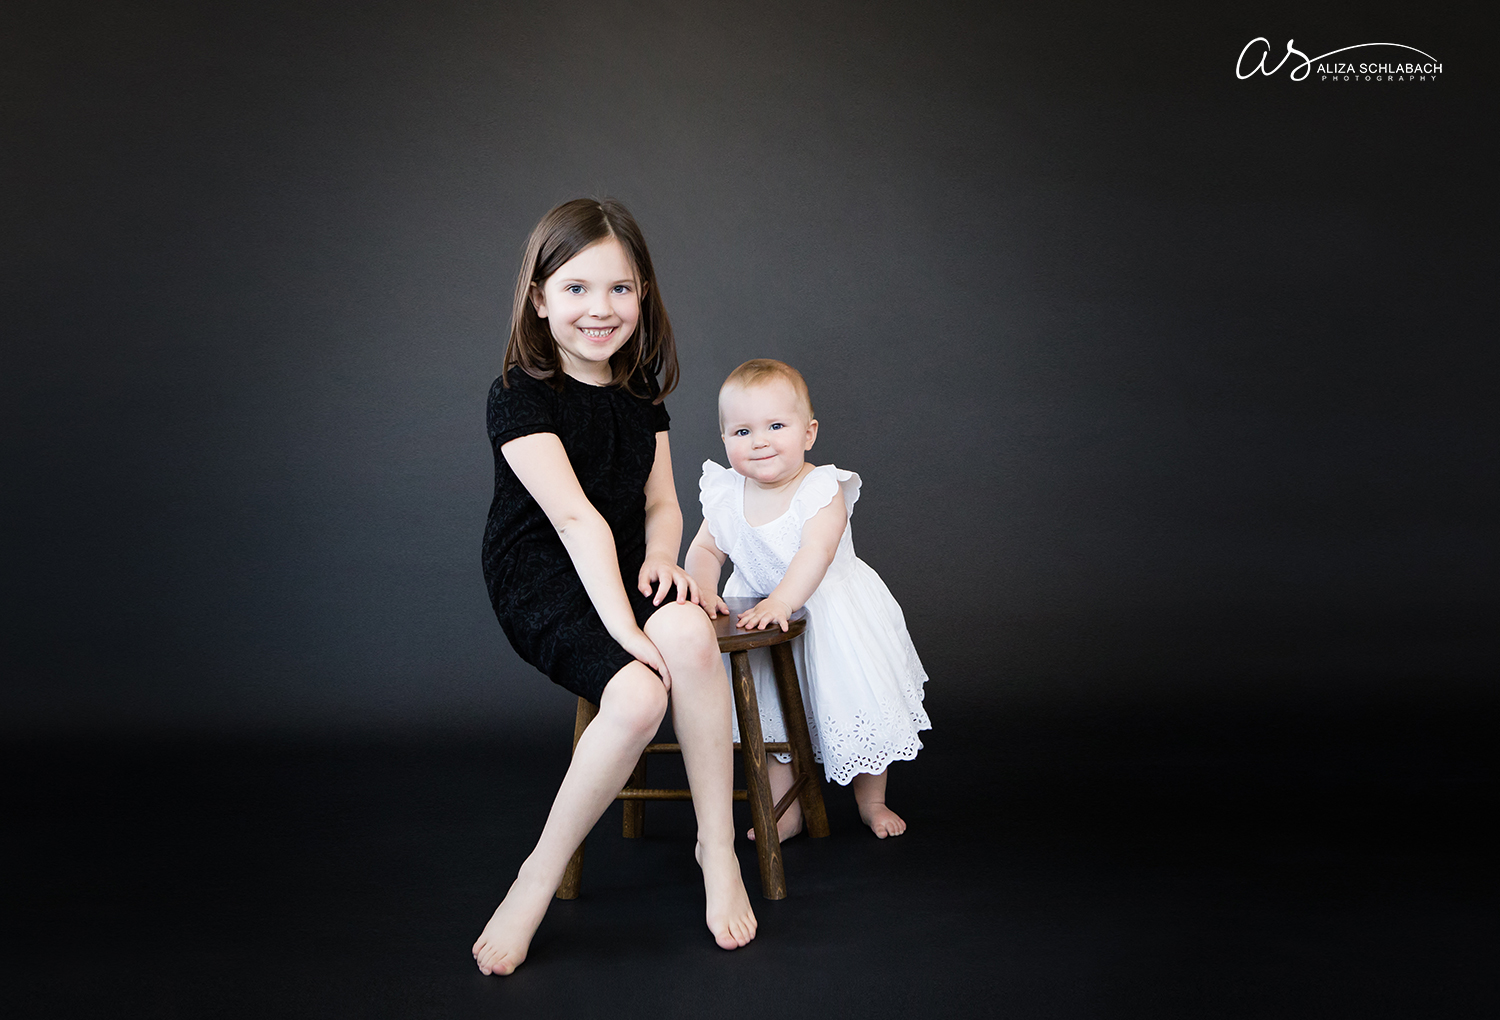 Photo on a black background of 6 and 1 year old sisters